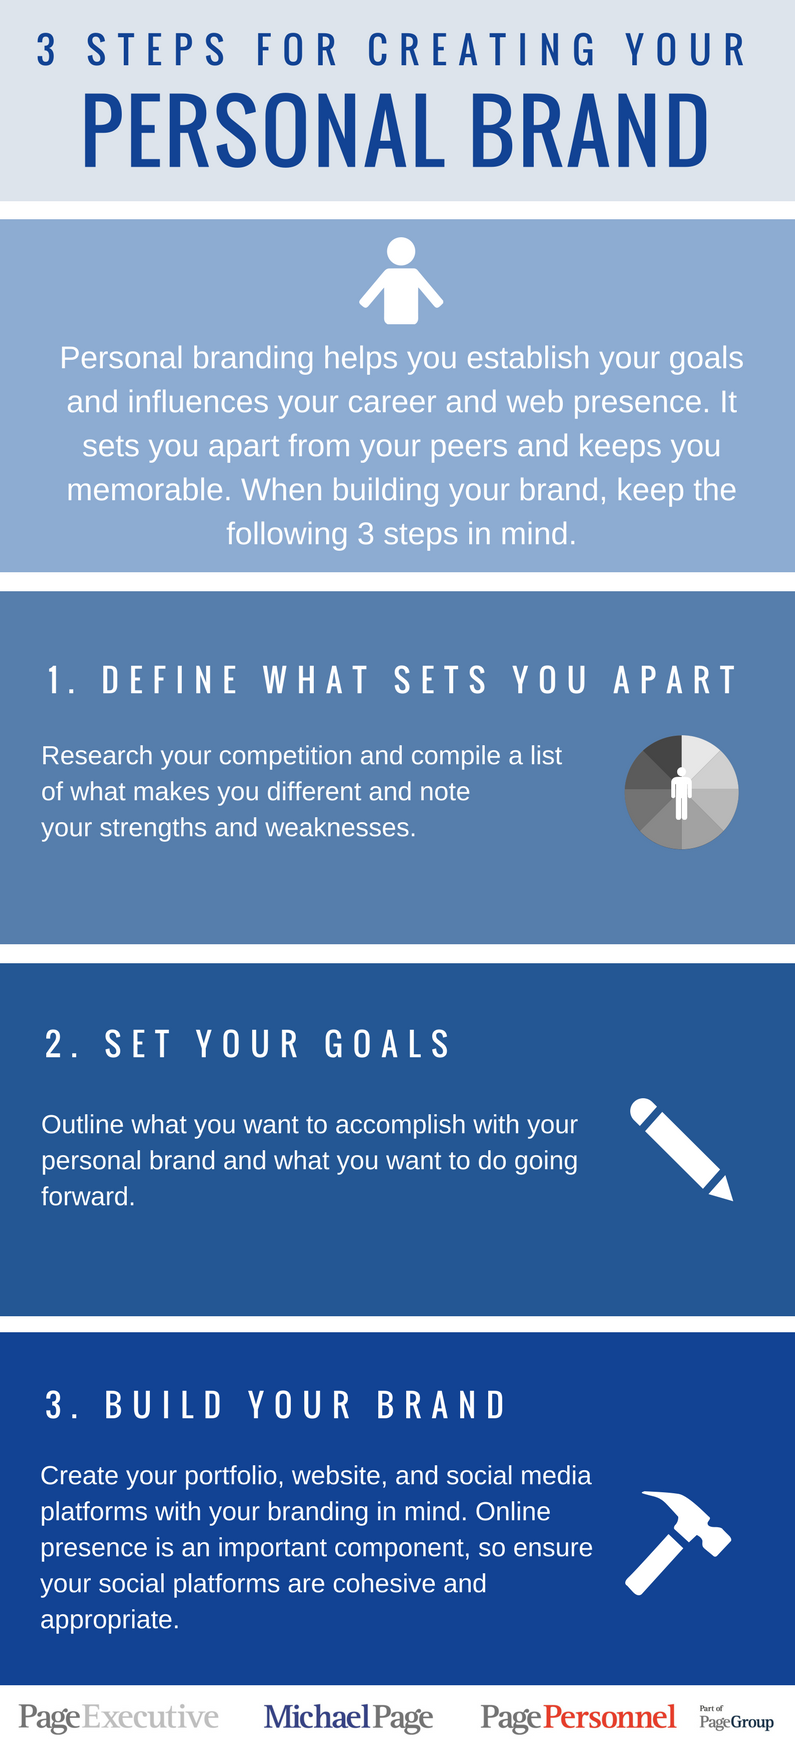 3 Steps For Creating Your Personal Brand Infographic